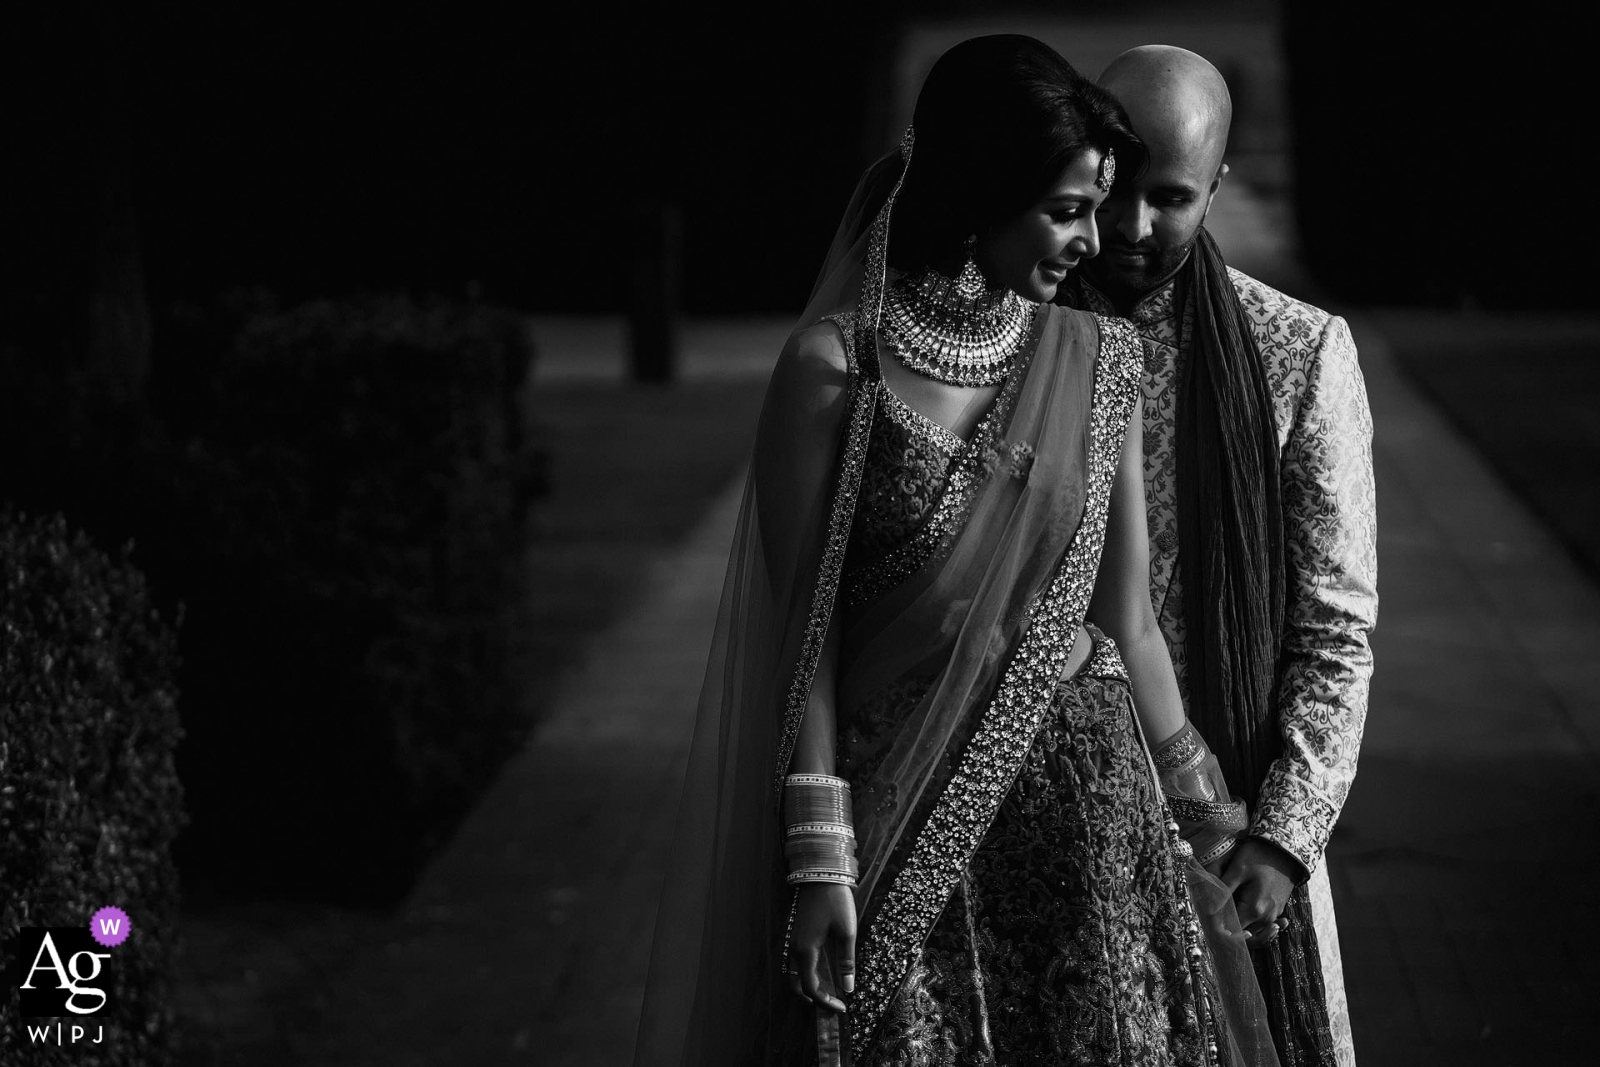 London Bride and Groom Portrait in black and white on wedding day